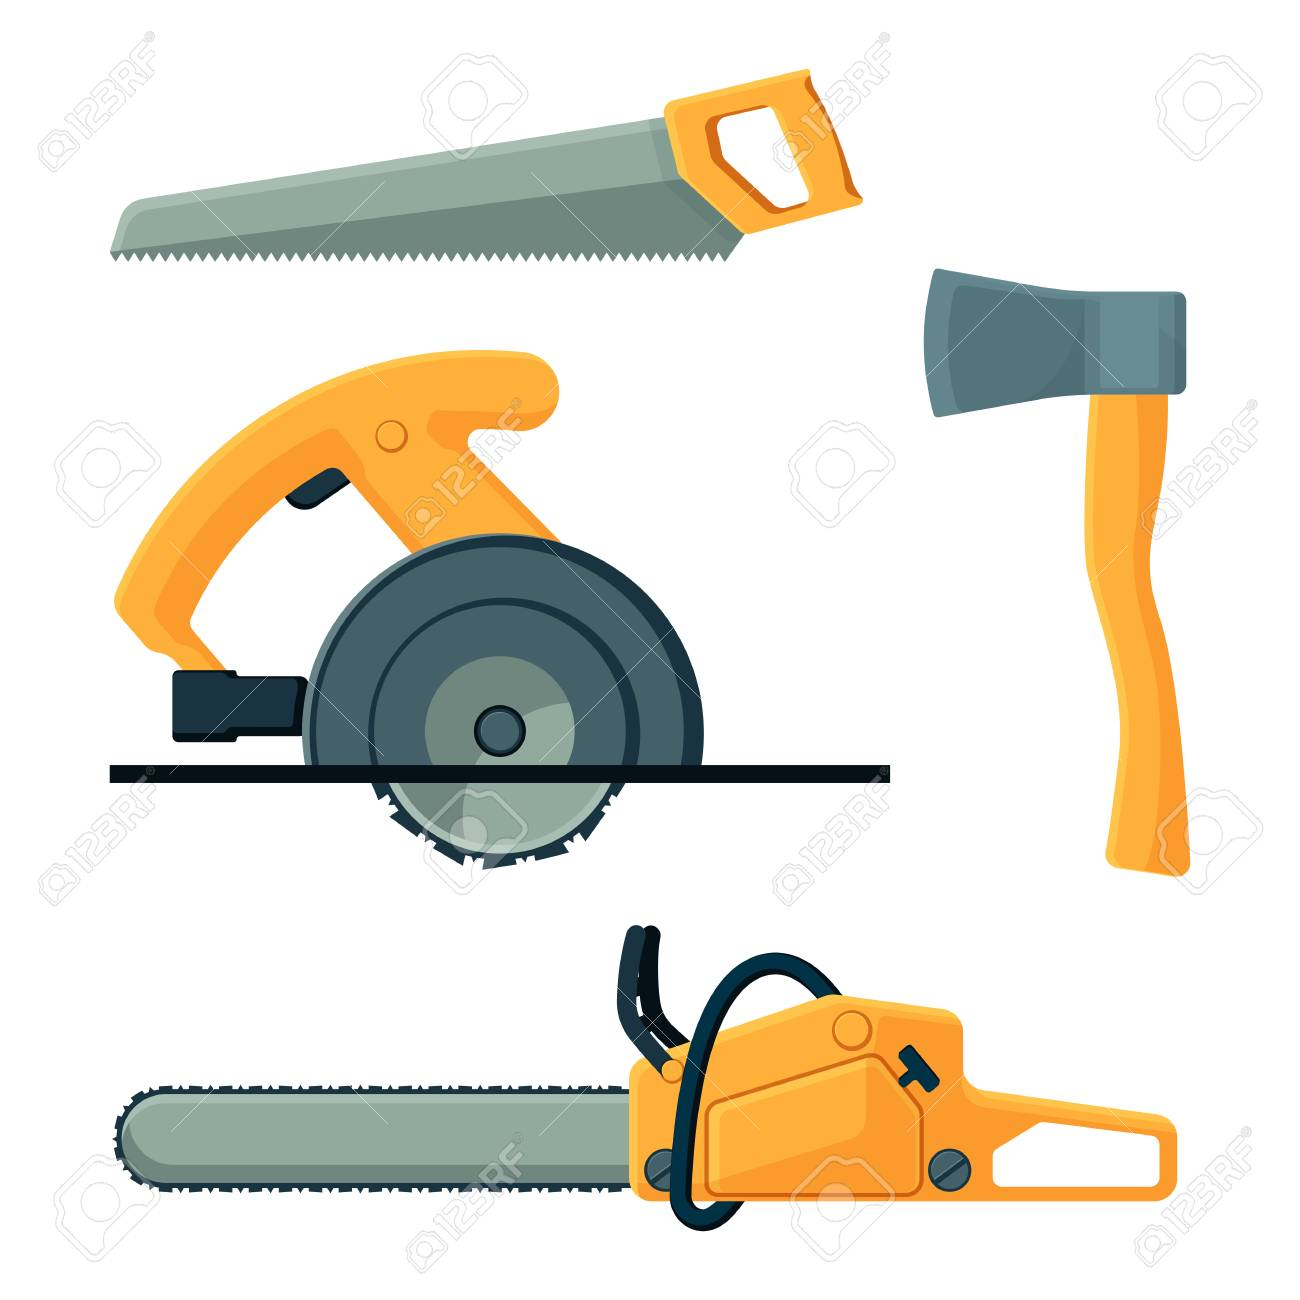 Woodworking Tools Vector Isolated On White Background Deforestation